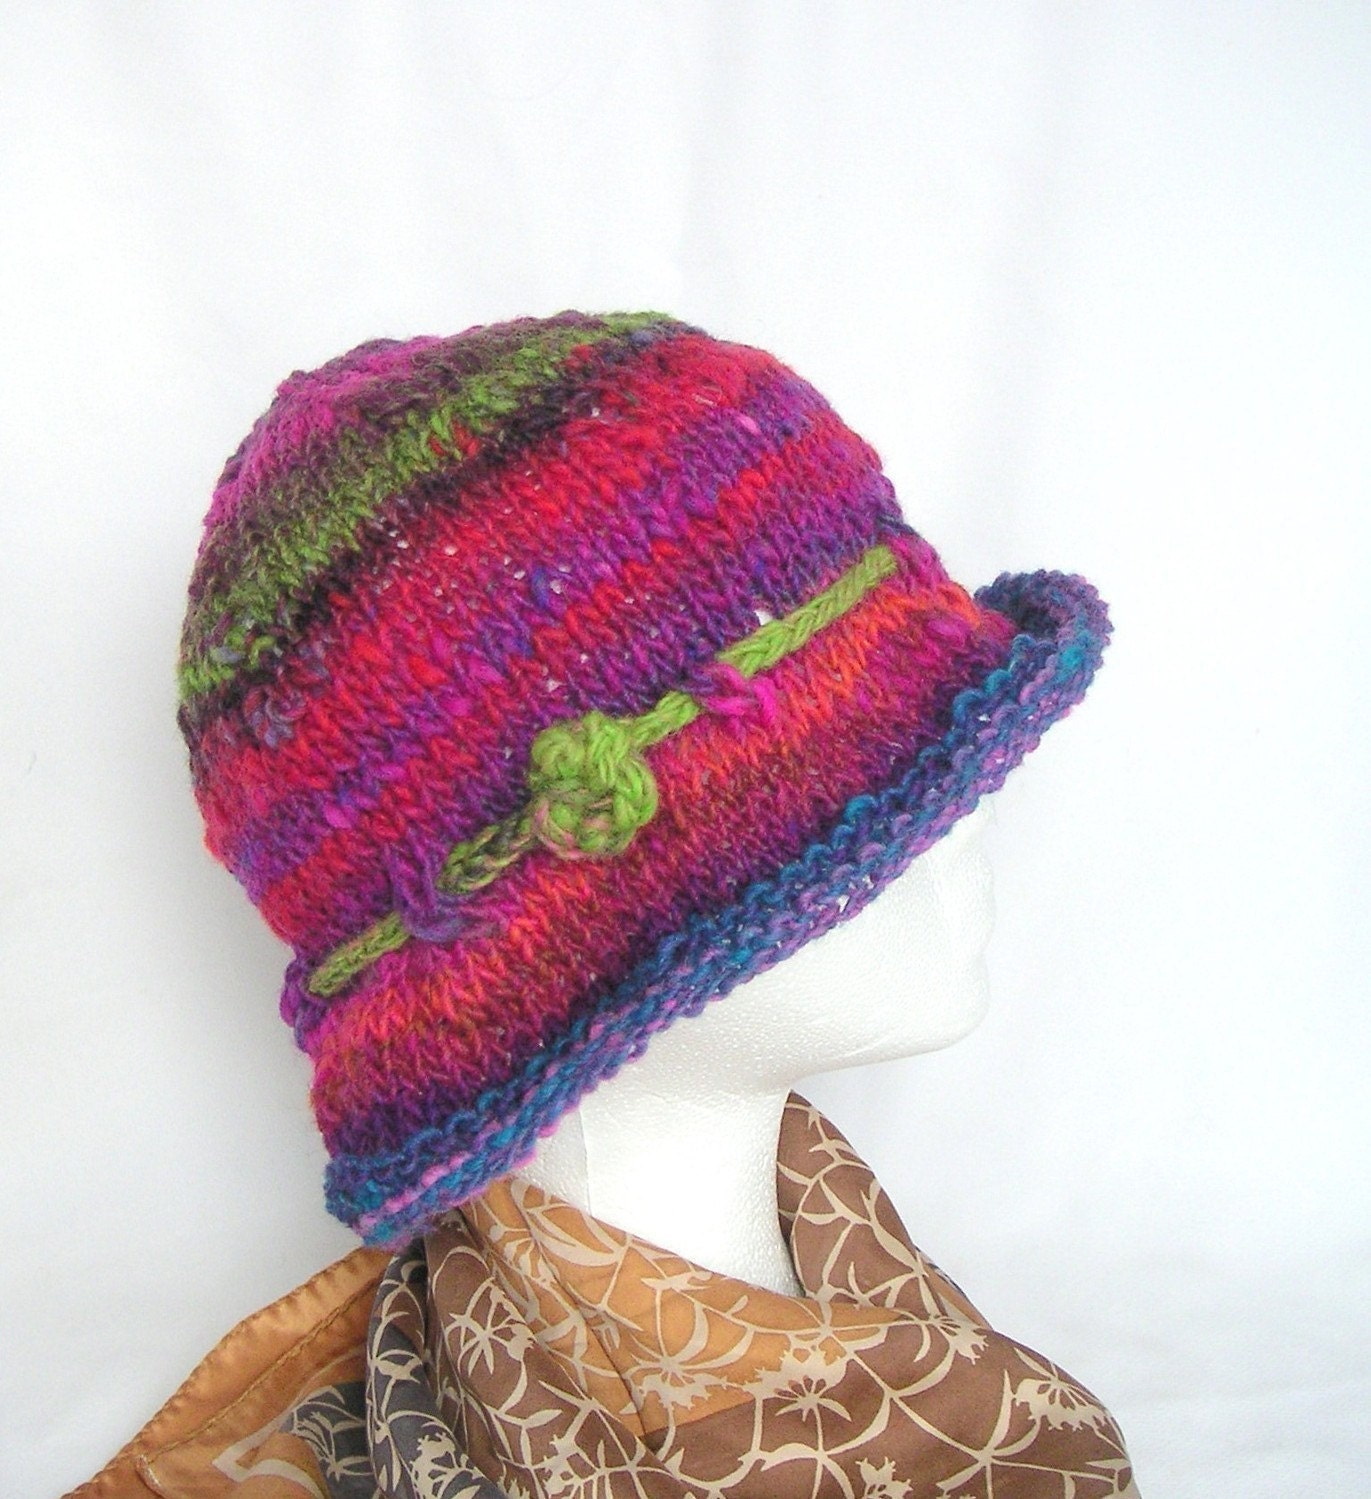 Easy Hat Knitting Patterns : EASY KNITTING PATTERNS FOR HATS   Free Patterns